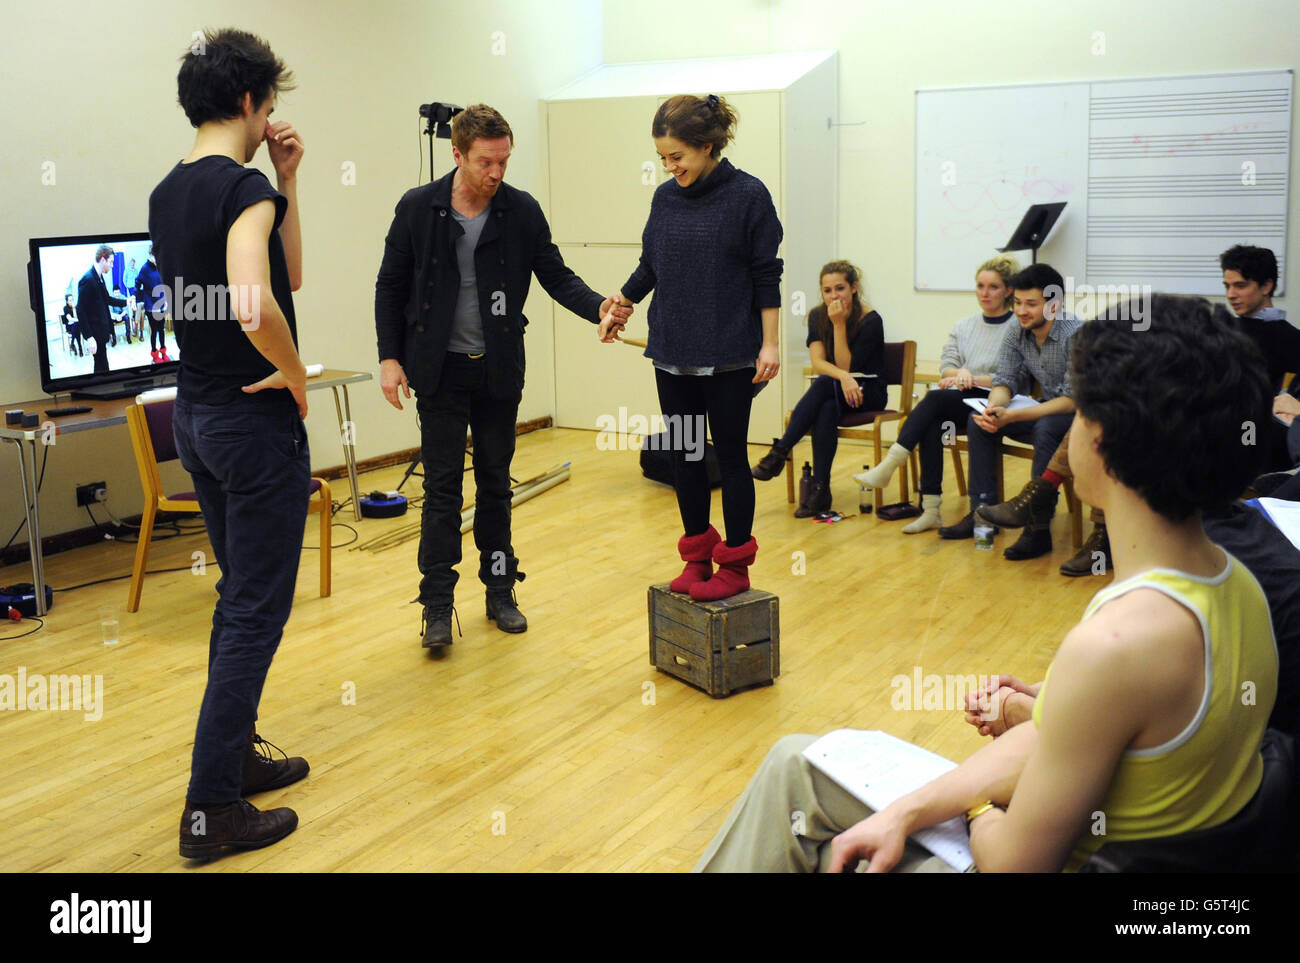 Damian Lewis gives acting class to students - Stock Image